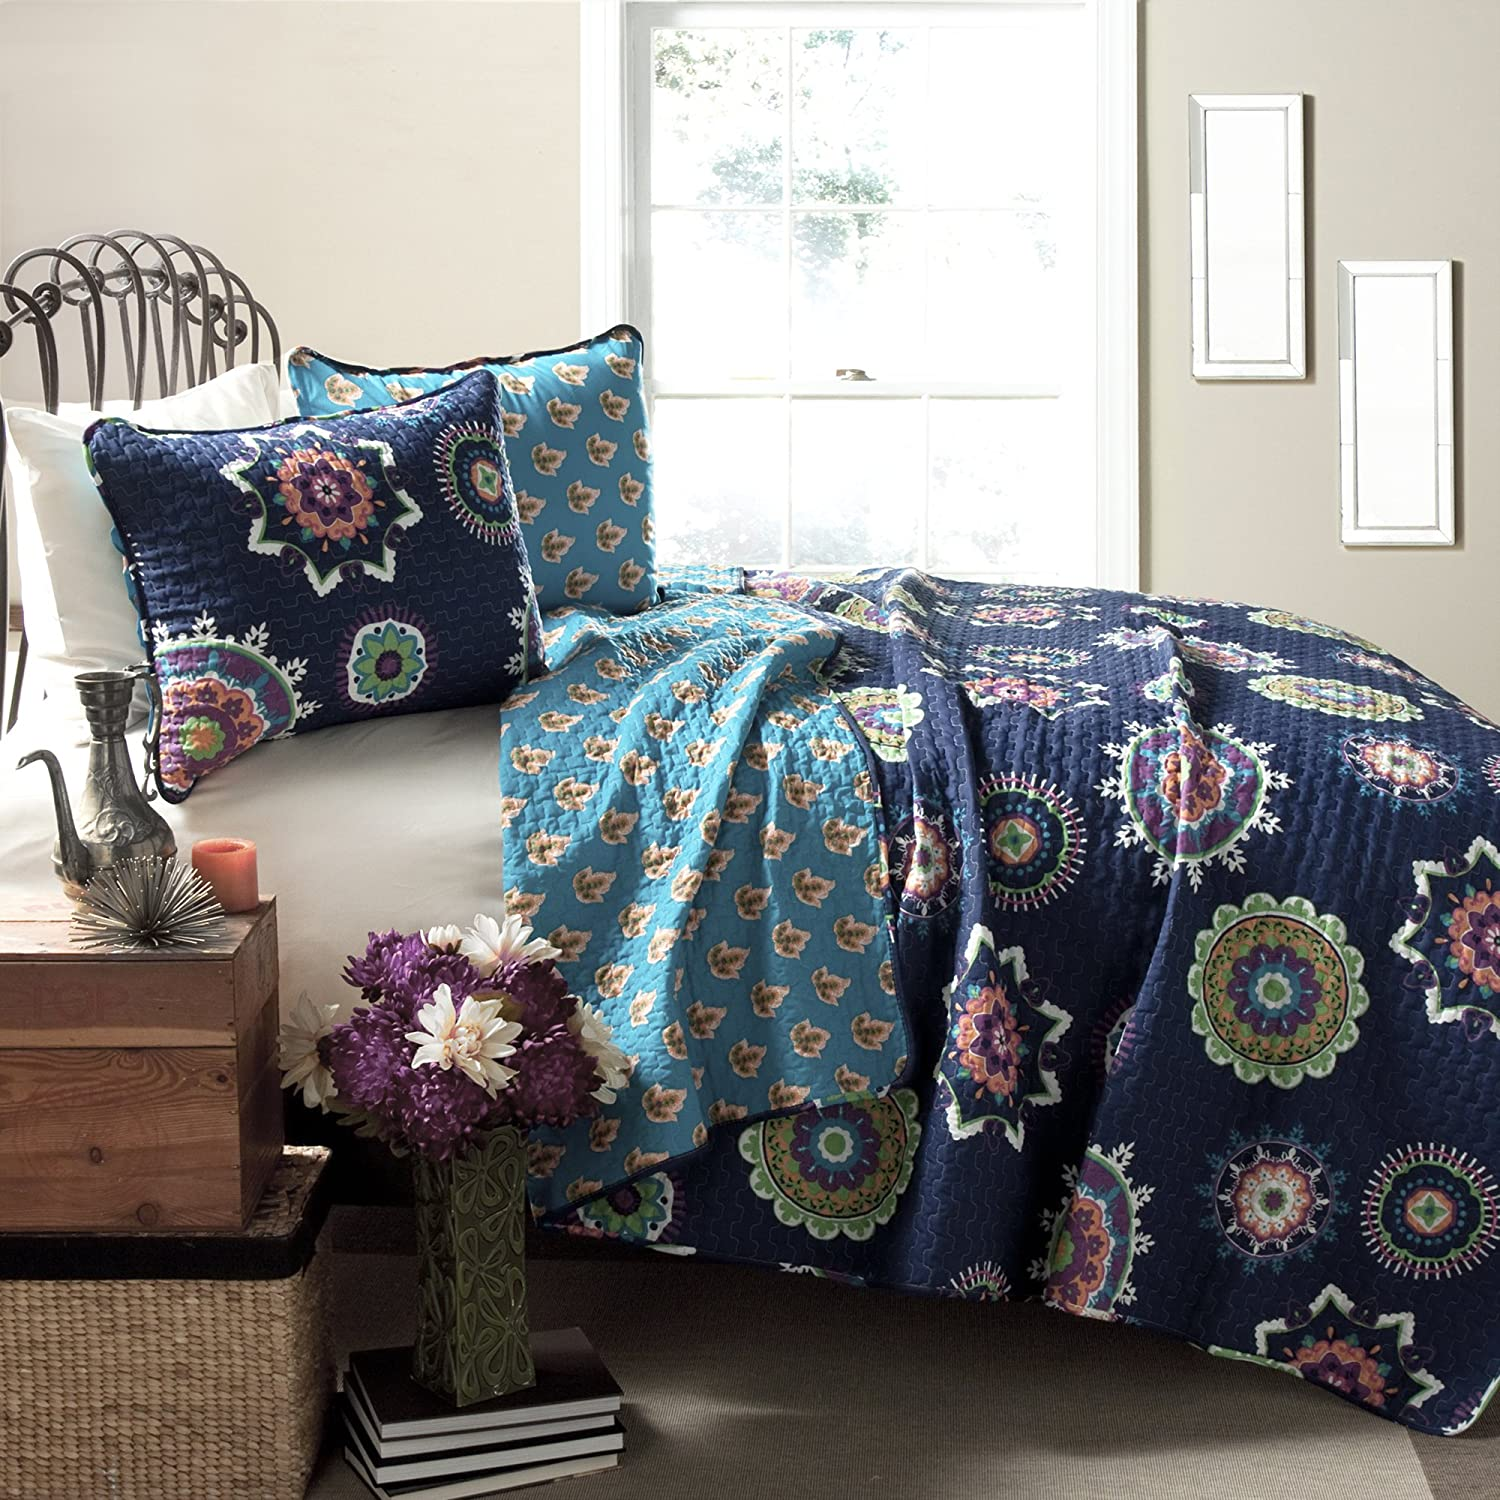 3-Piece Quilt Set, Full/Queen, Navy